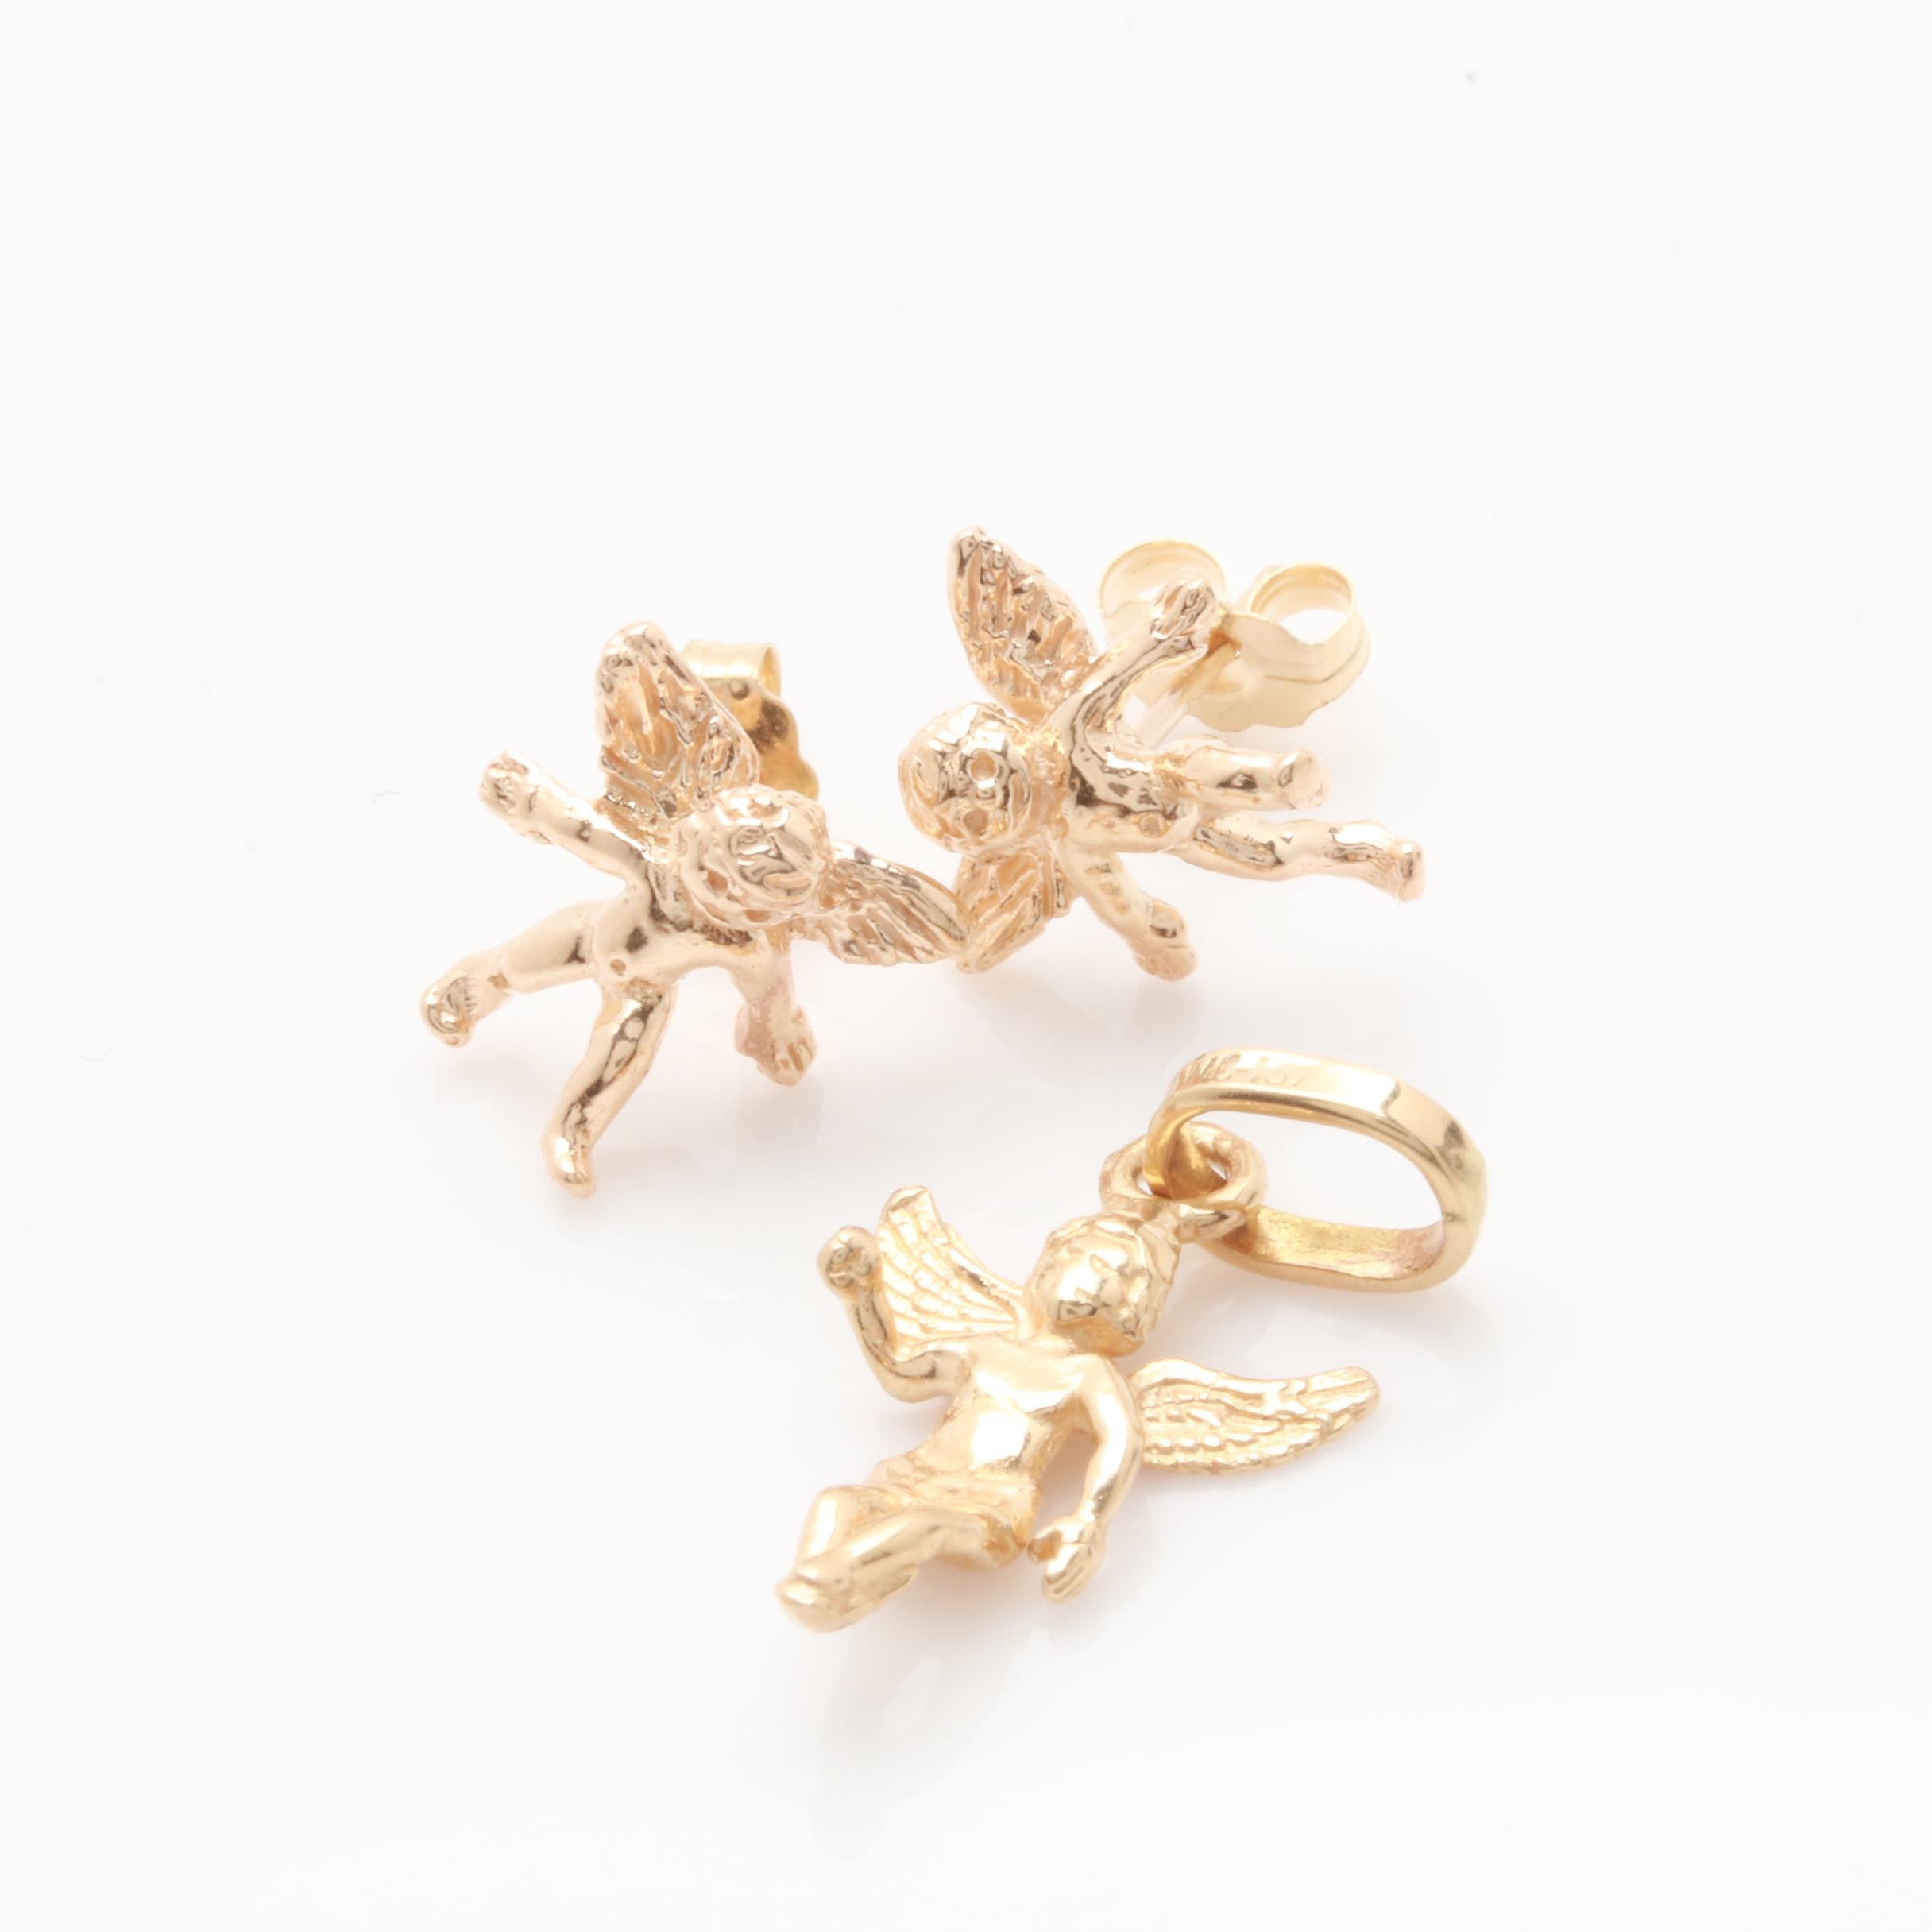 14K Yellow Gold Cupid Pendant and Stud Earrings